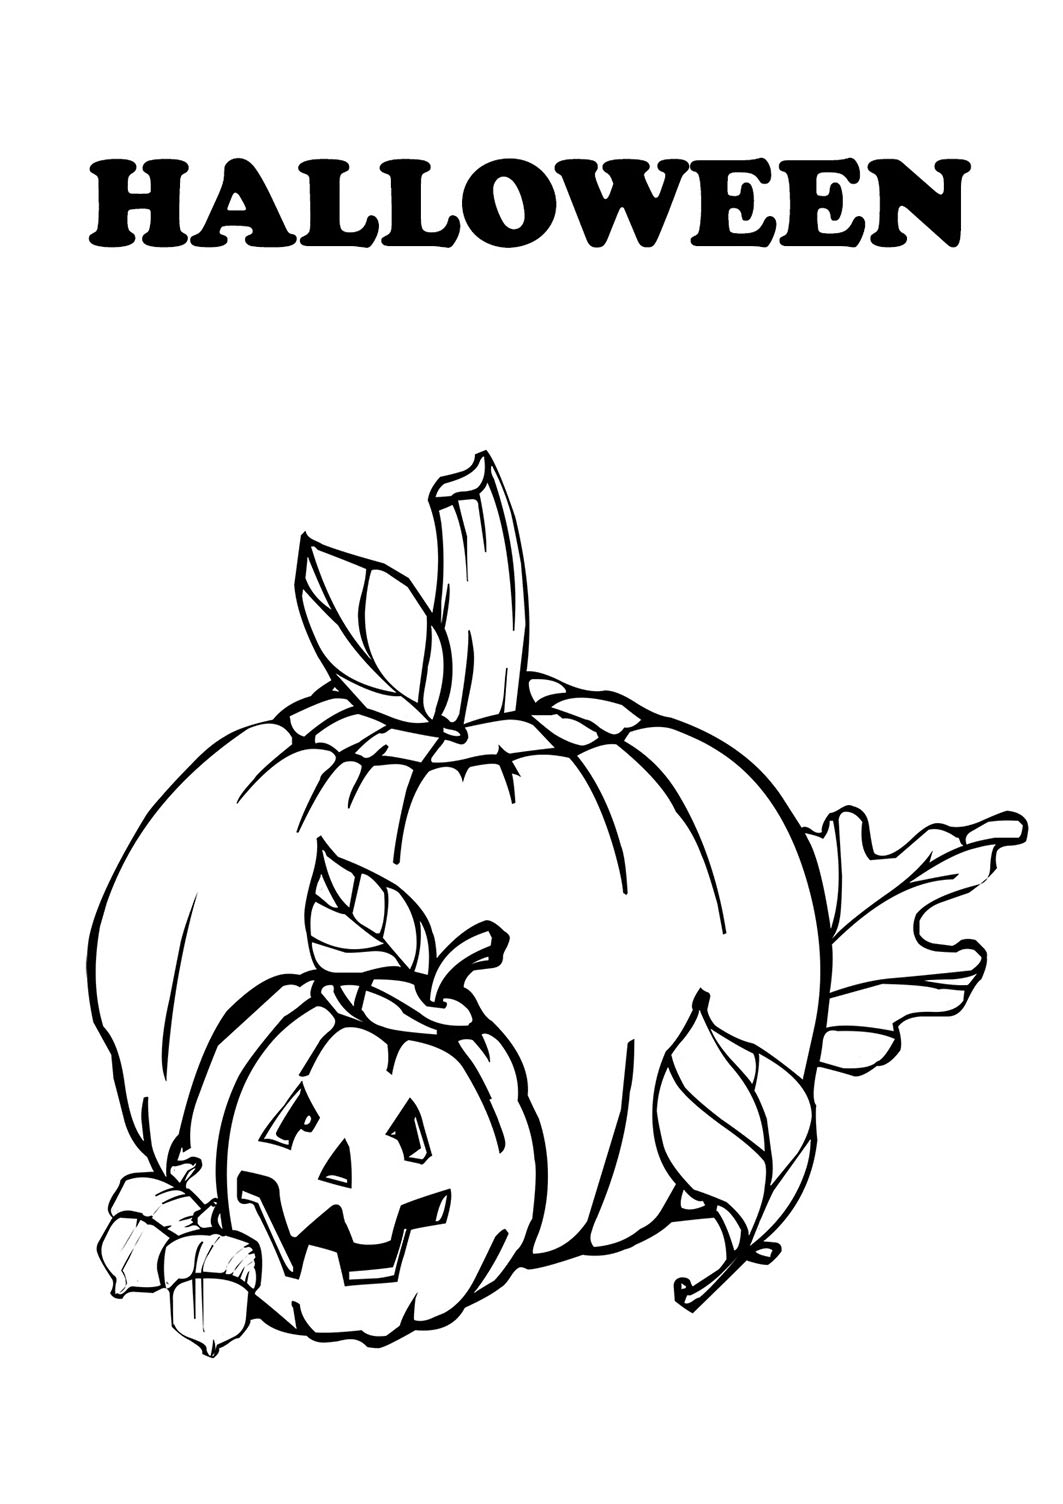 coloring sheets for halloween scary halloween pumpkin coloring pages team colors sheets for halloween coloring